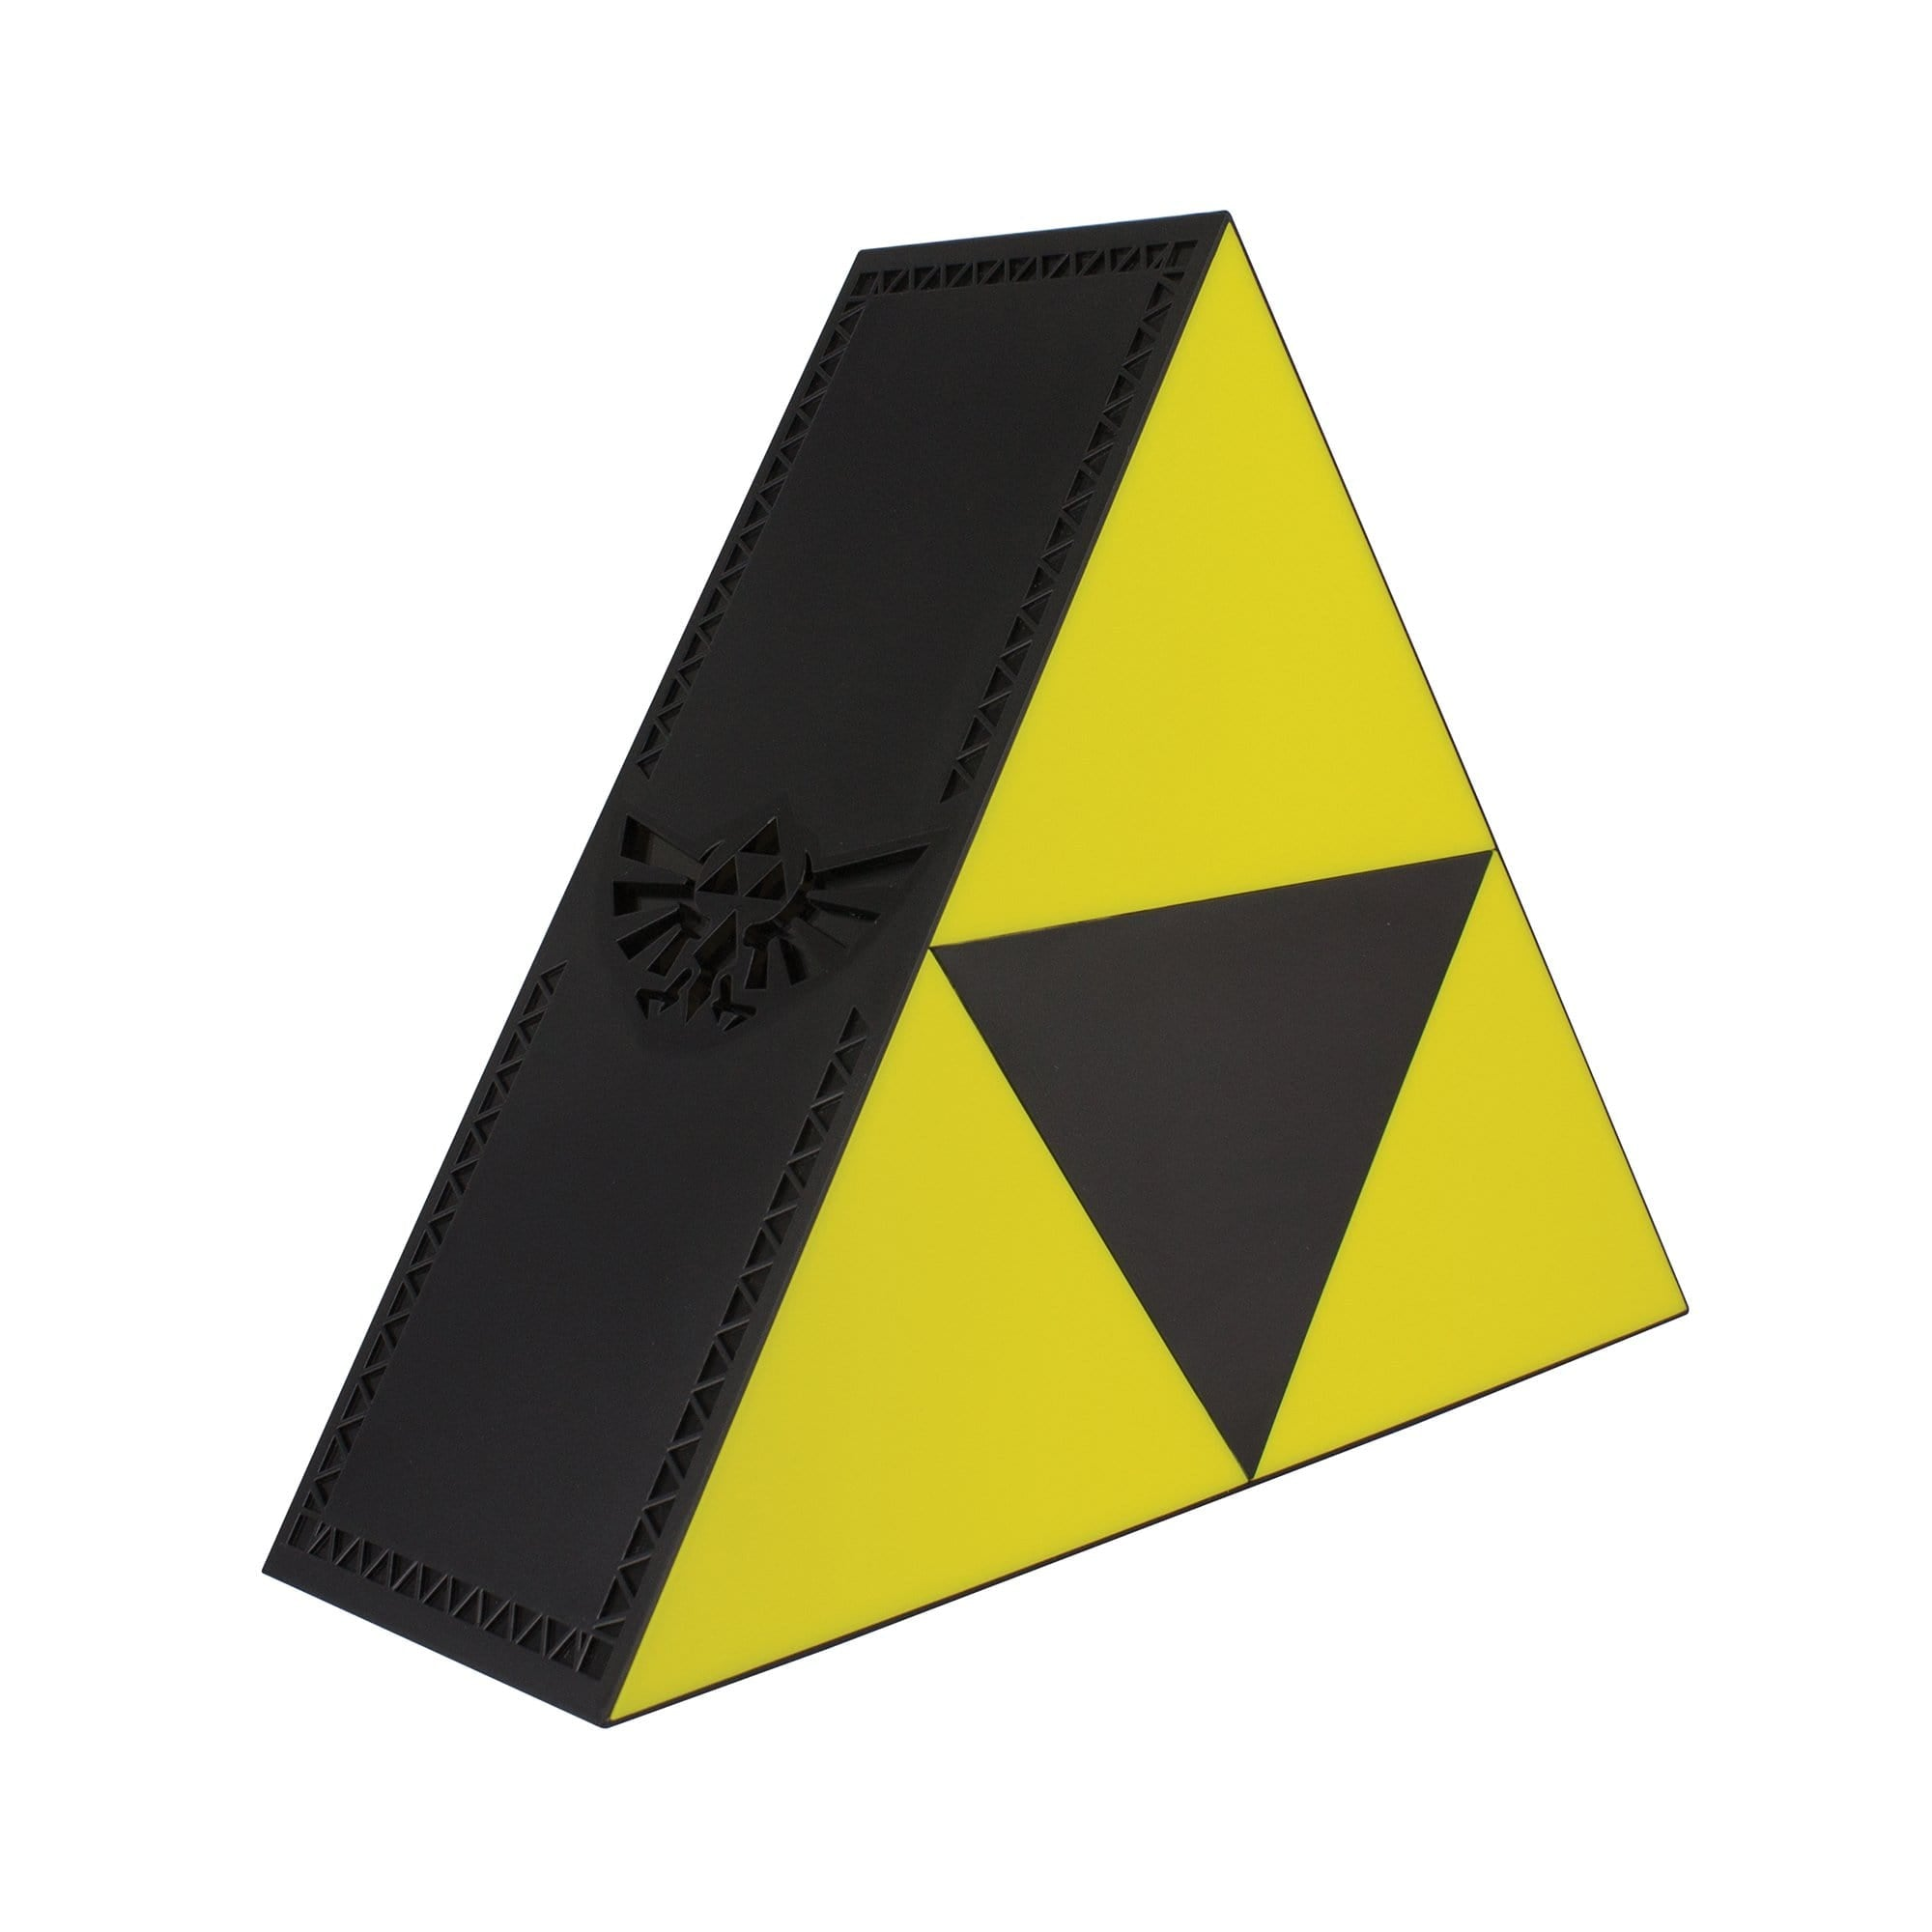 Triforce light made by Paladone, sold by HIDEit Mounts. Triangle light with smaller yellow triangles.